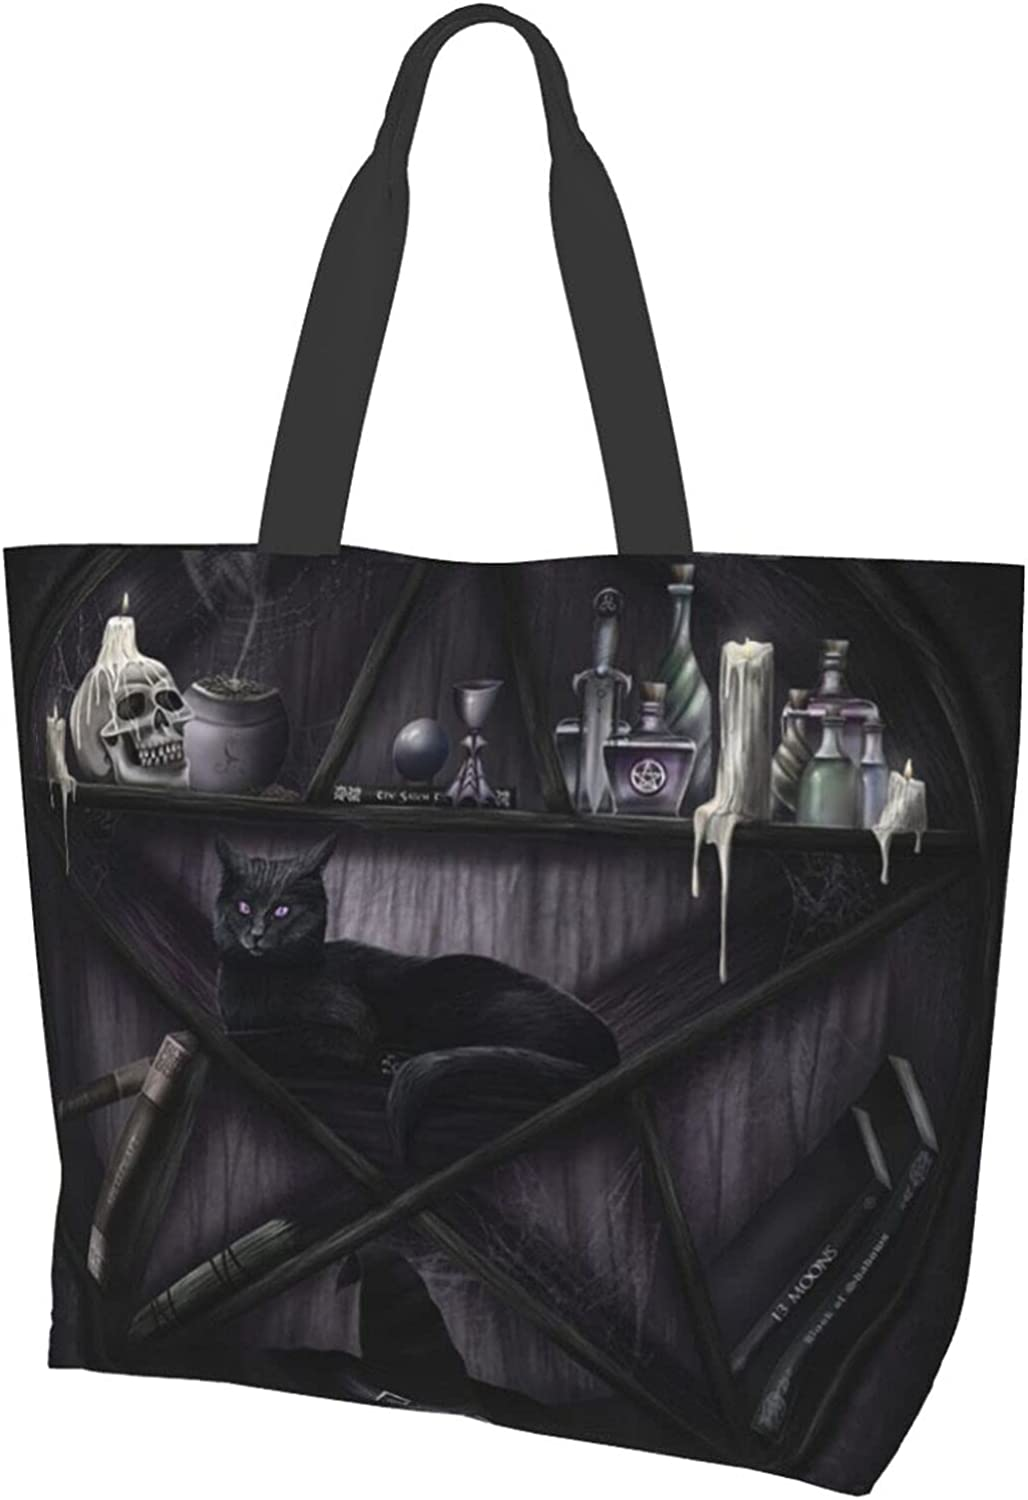 Themed Printed Women'S Canvas Shoulder Bags Casual Handbags Work Bag Tote Purses Leisure Hobo Bag For Shopping